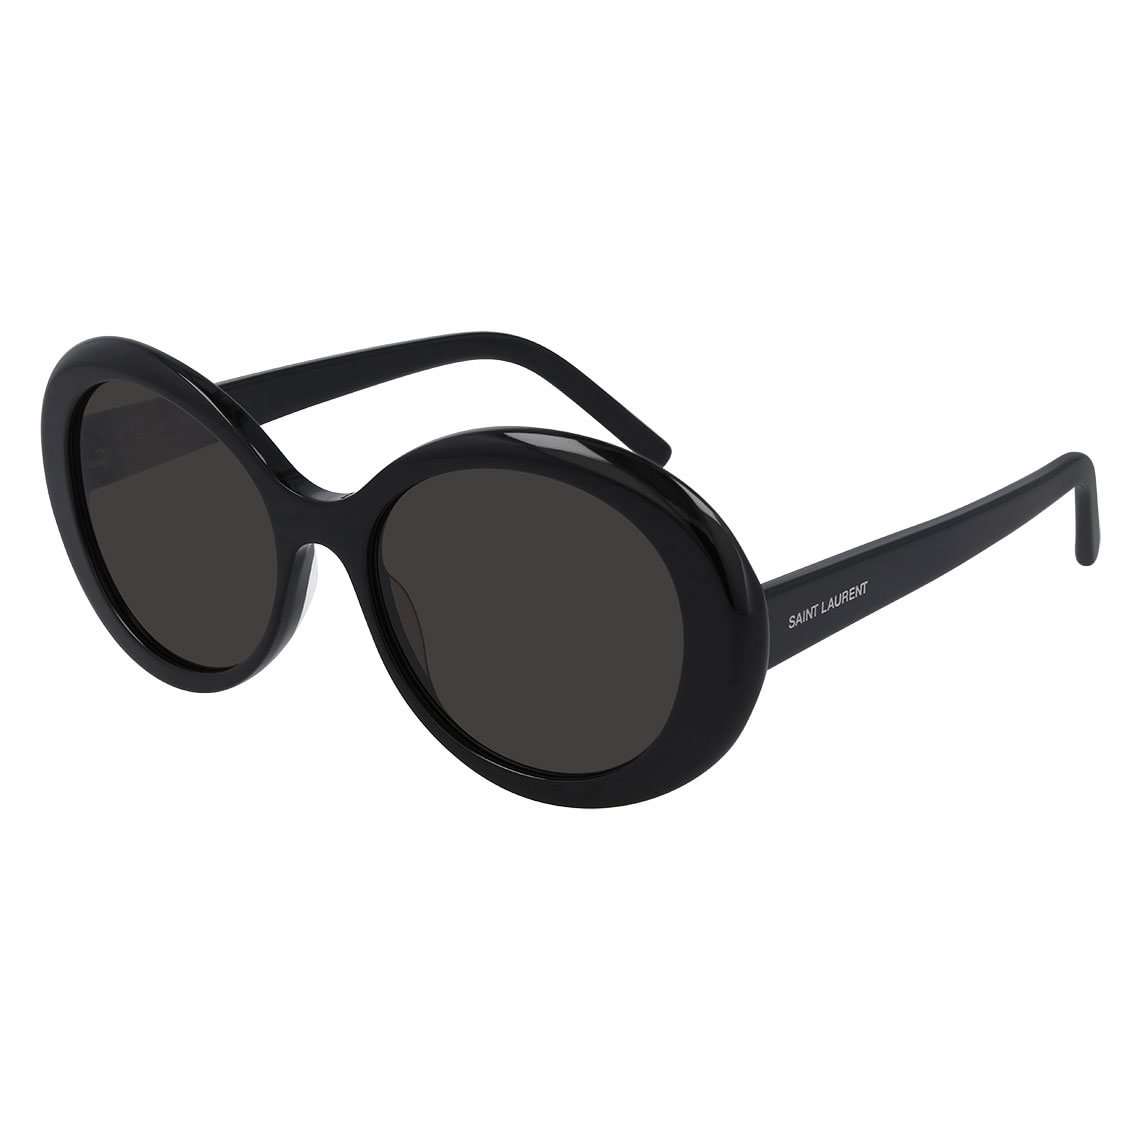 Saint Laurent SL 419 001 5618